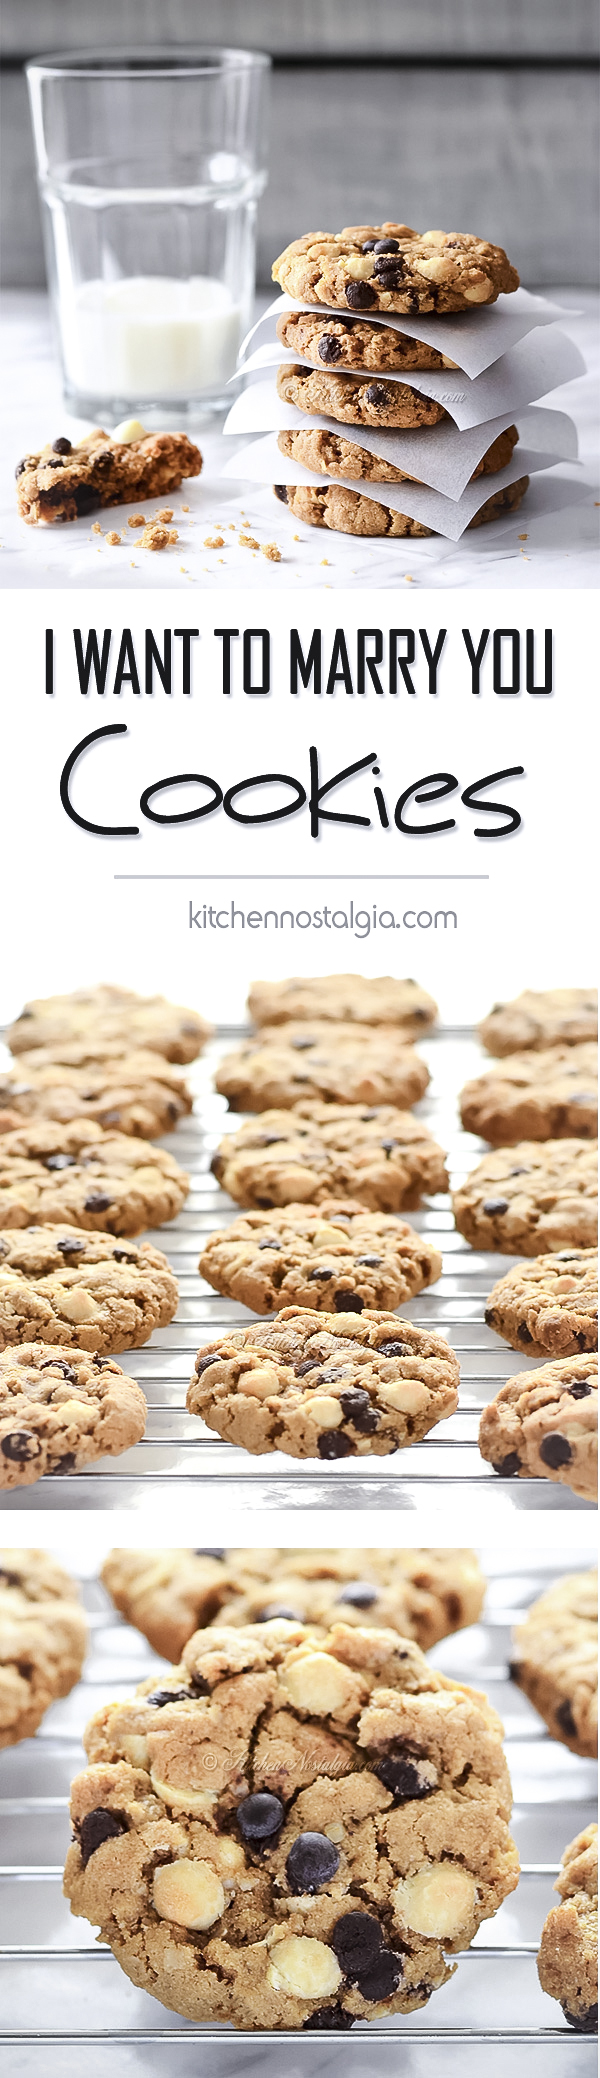 I Want to Marry You Cookies - KitchenNostalgia.com